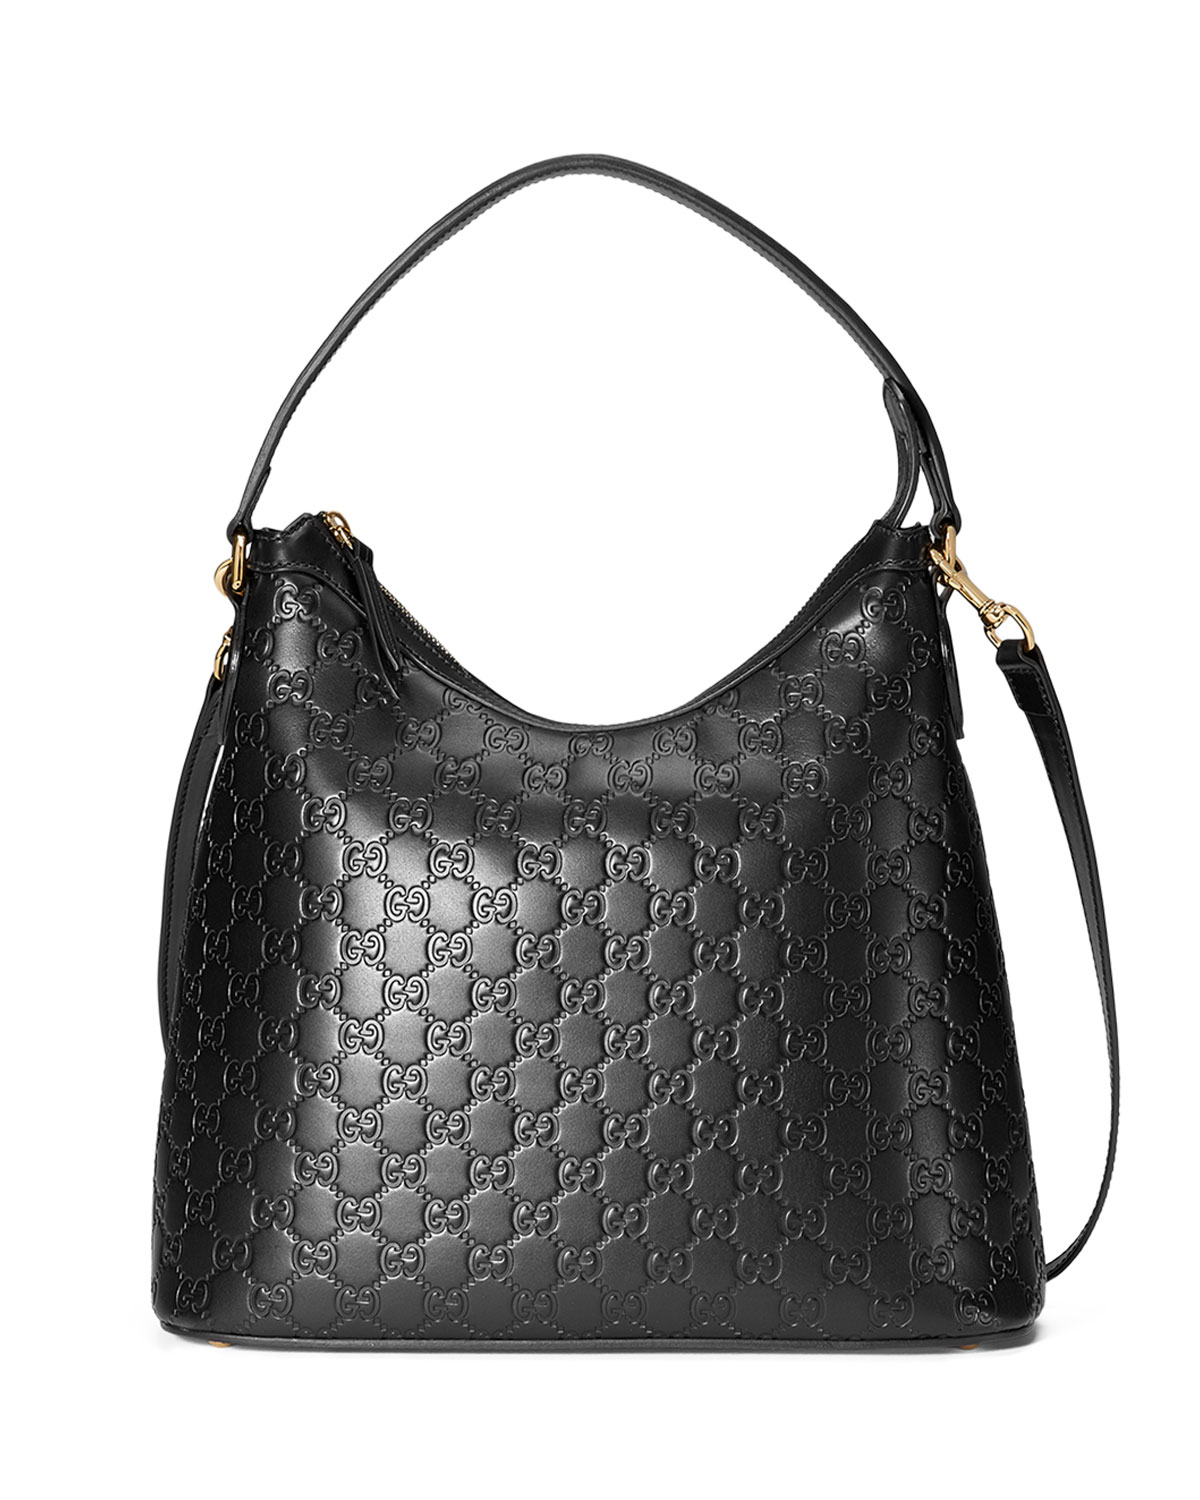 714ca55cd3be Gucci Guccissima Medium Hobo Bag, Black | Neiman Marcus